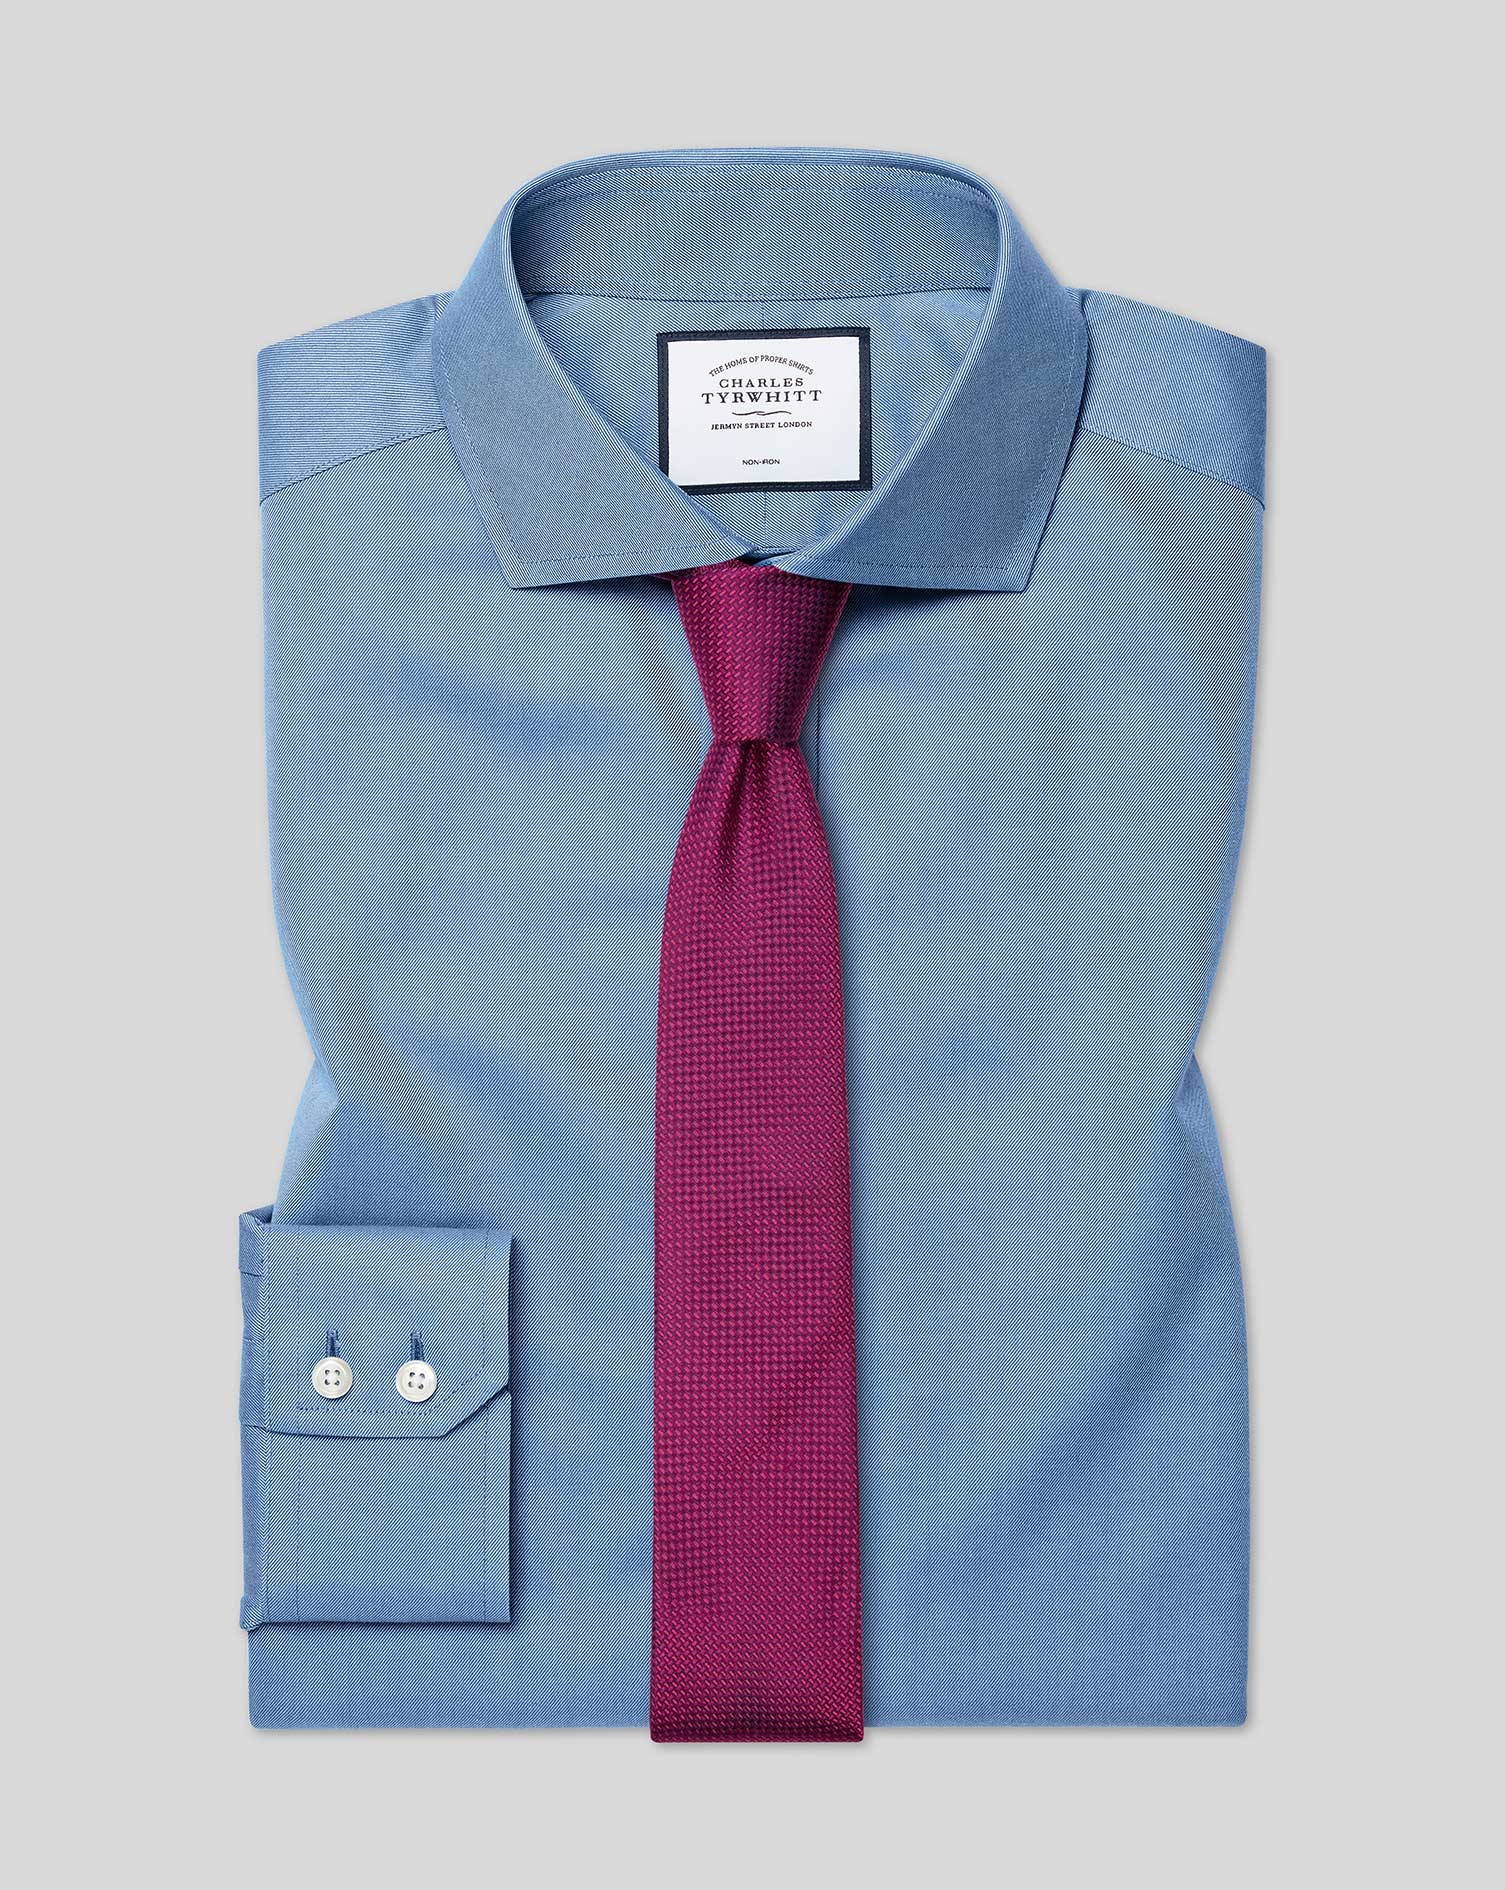 Extra Slim Fit Non-Iron Twill Blue Cotton Formal Shirt Double Cuff Size 15.5/33 by Charles Tyrwhitt